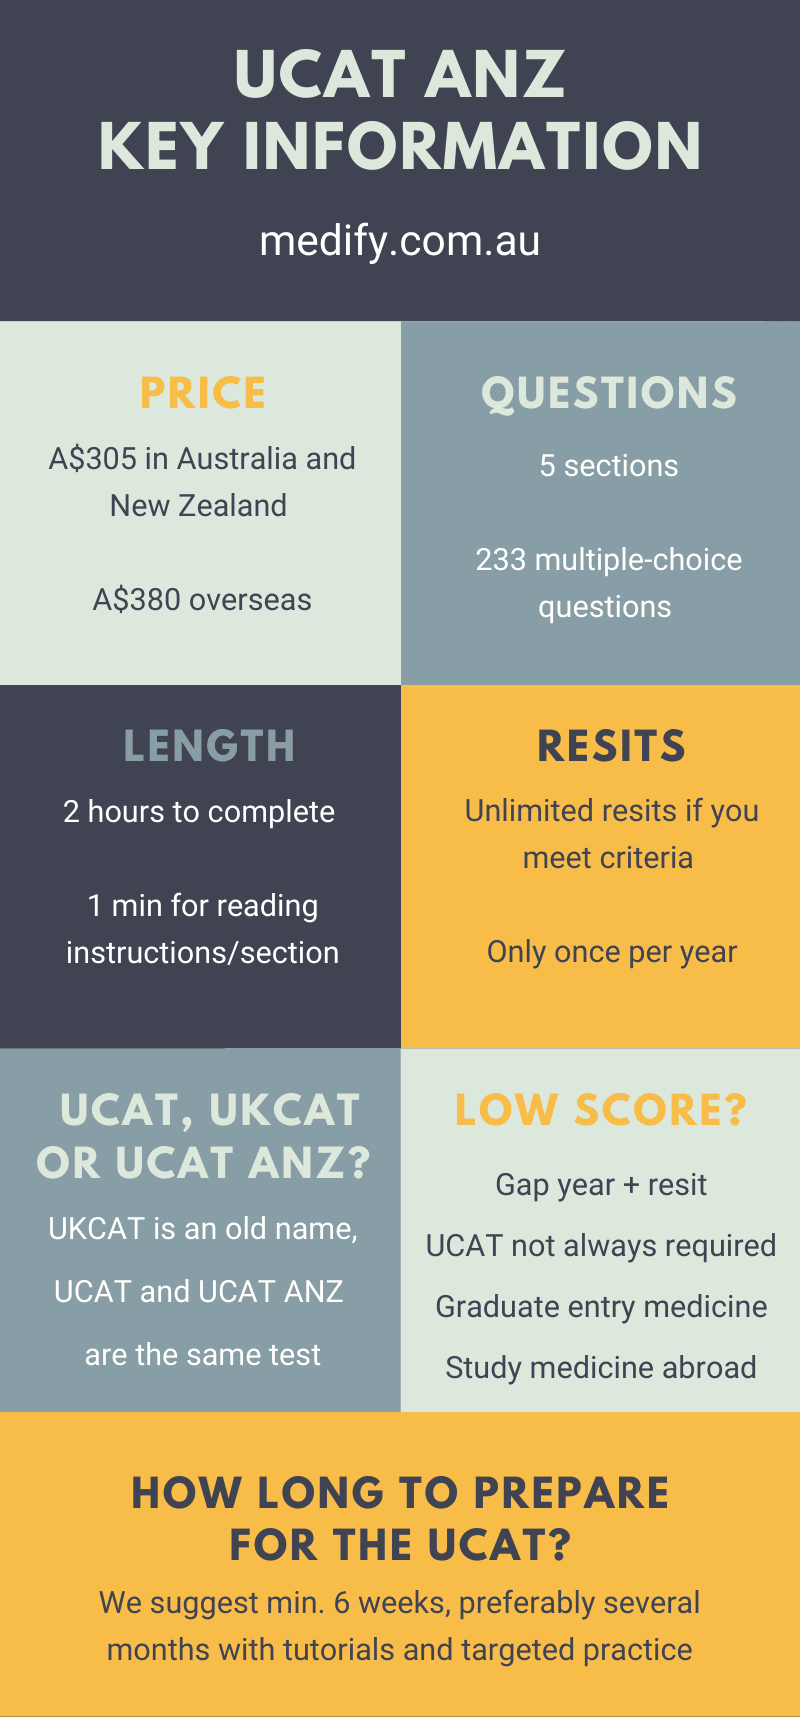 UCAT ANZ test: Key information (medify.com.au) UCAT price: $305 ANZ/NZ, $380 overseas. Questions: 5 sections, 233 multi-choice questions. Length: 2 hours to complete, 1 minute for reading instructions, Resits: Unlimited, once per year. UKCAT vs UKCAT vs UCAT ANZ: same test, UKCAT is the old name, ANZ is Australia and New Zealand. Low score options: Gap year + resit, some schools don't require UCAT, Graduate Entry Medicine, Study abroad. How long to prepare for the UCAT? 6 weeks to several months is recommended.